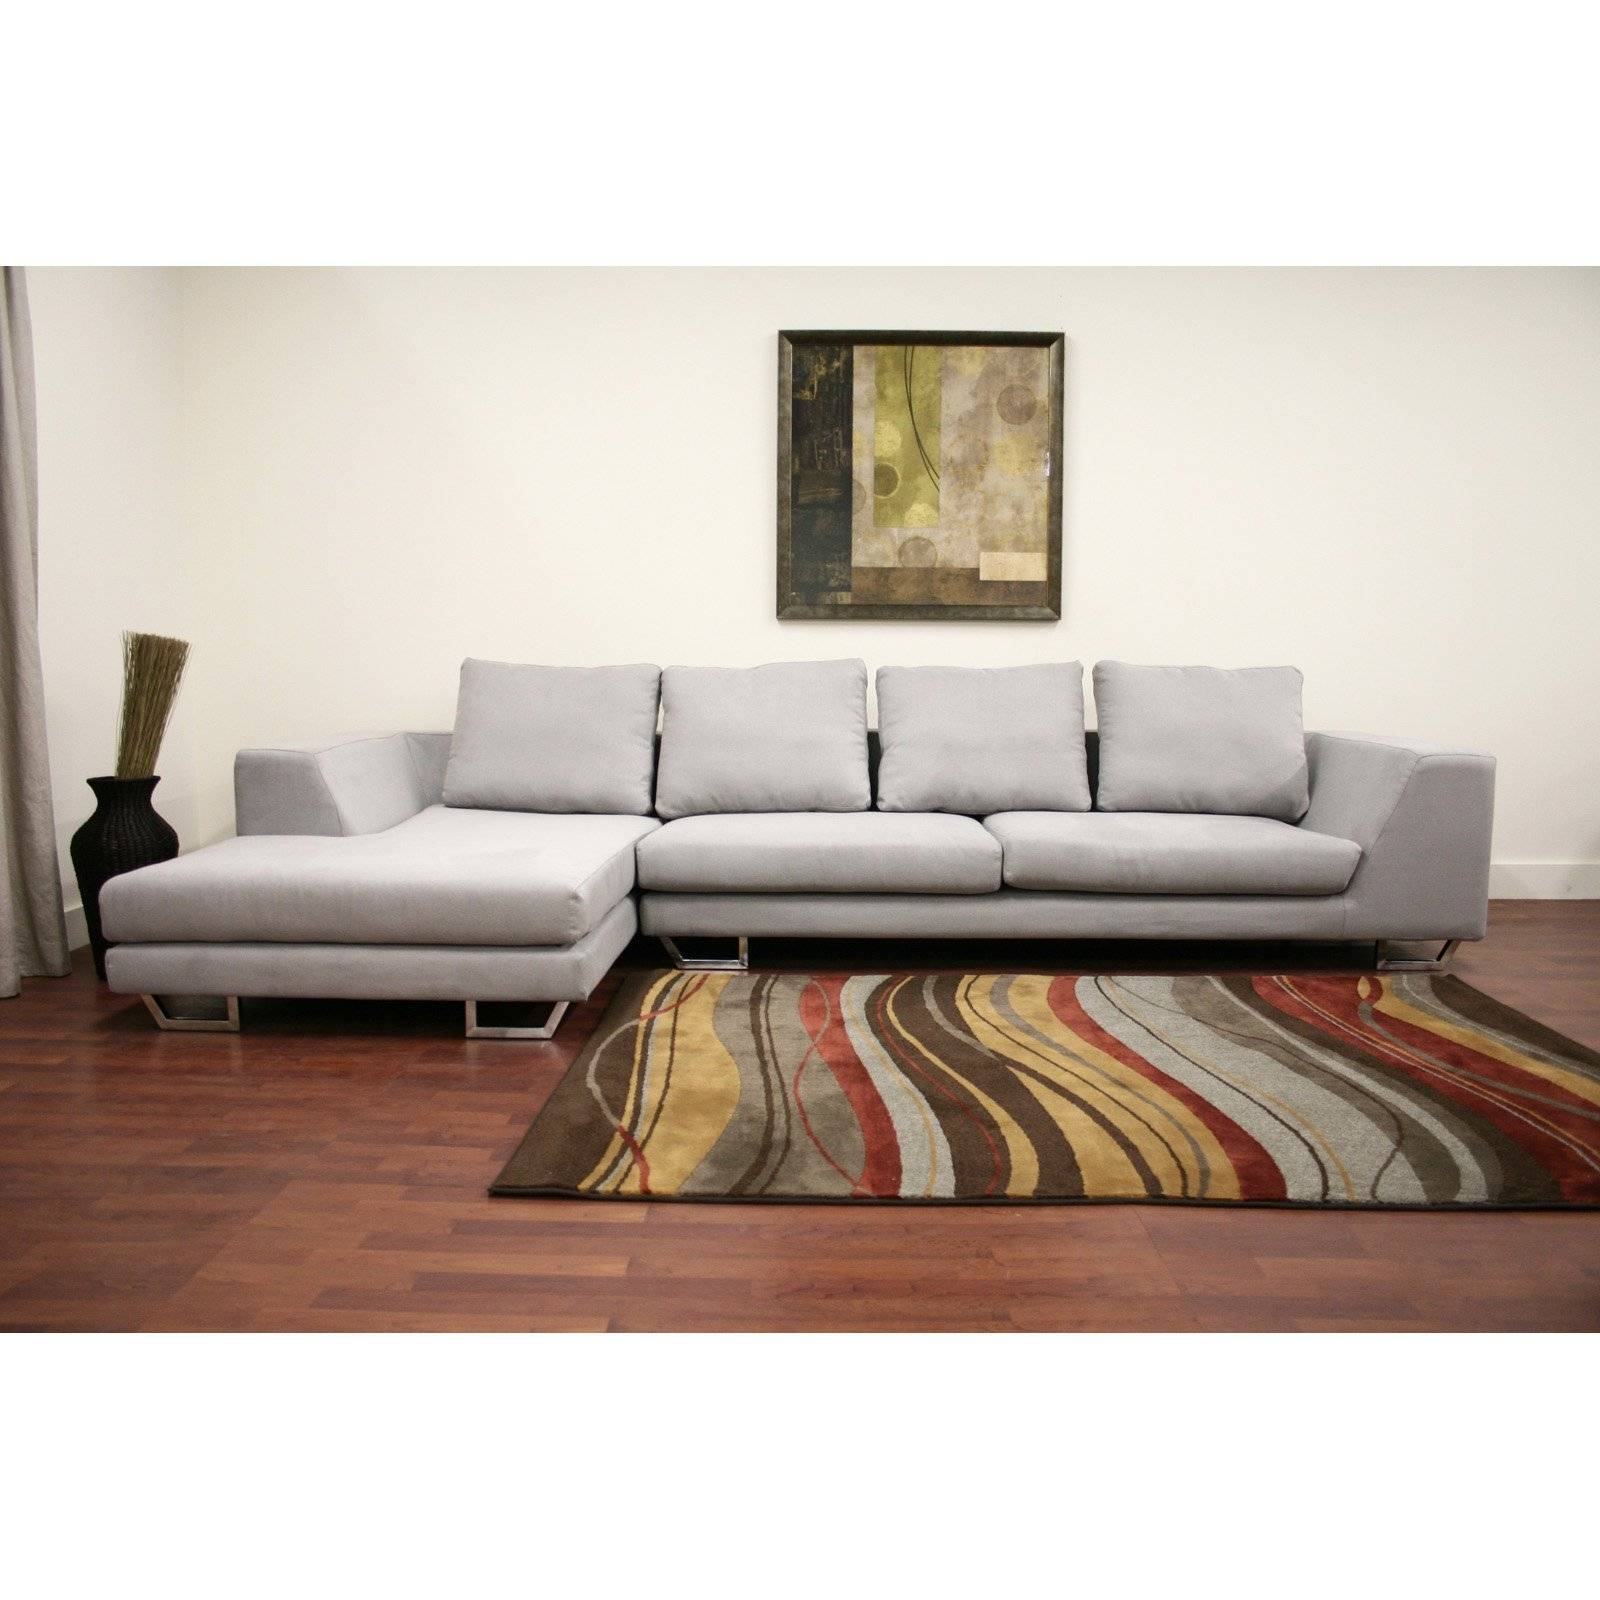 Bentley Sectional Leather Sofa - Leather Sectional Sofa pertaining to Bentley Sectional Leather Sofa (Image 8 of 30)